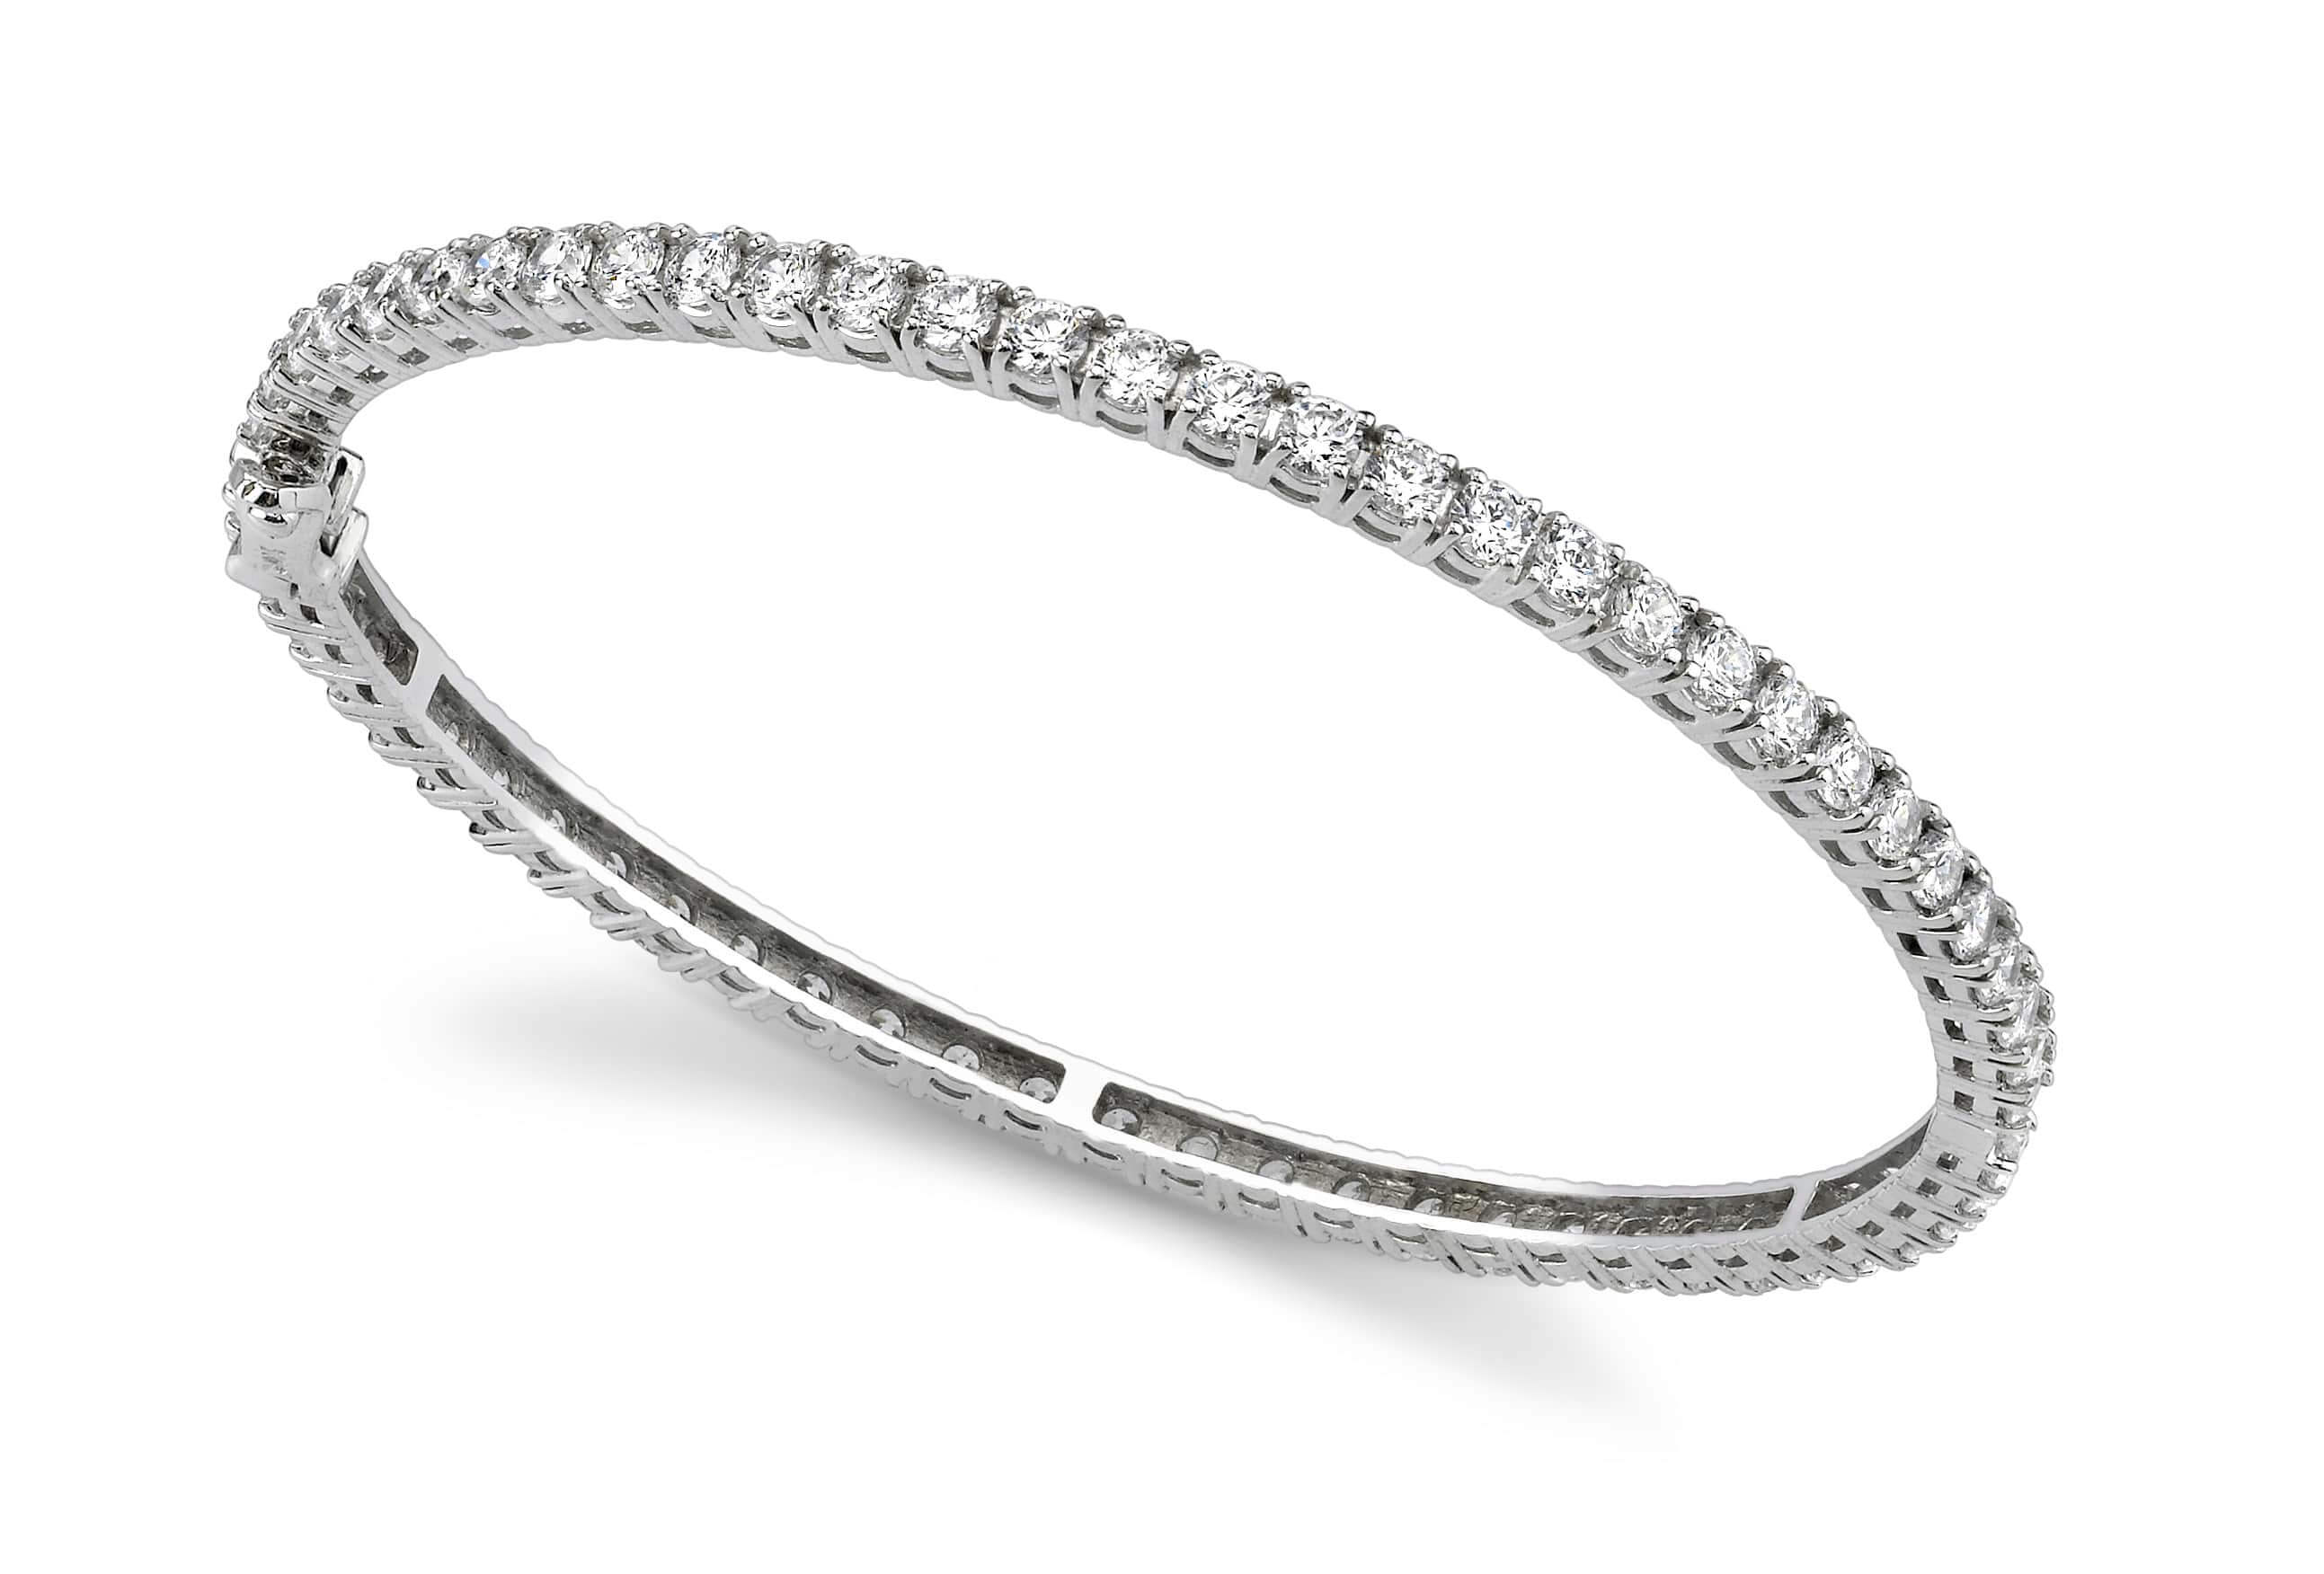 gold bangle move bangles bracelet diamond joaillerie pave white messika noa floating